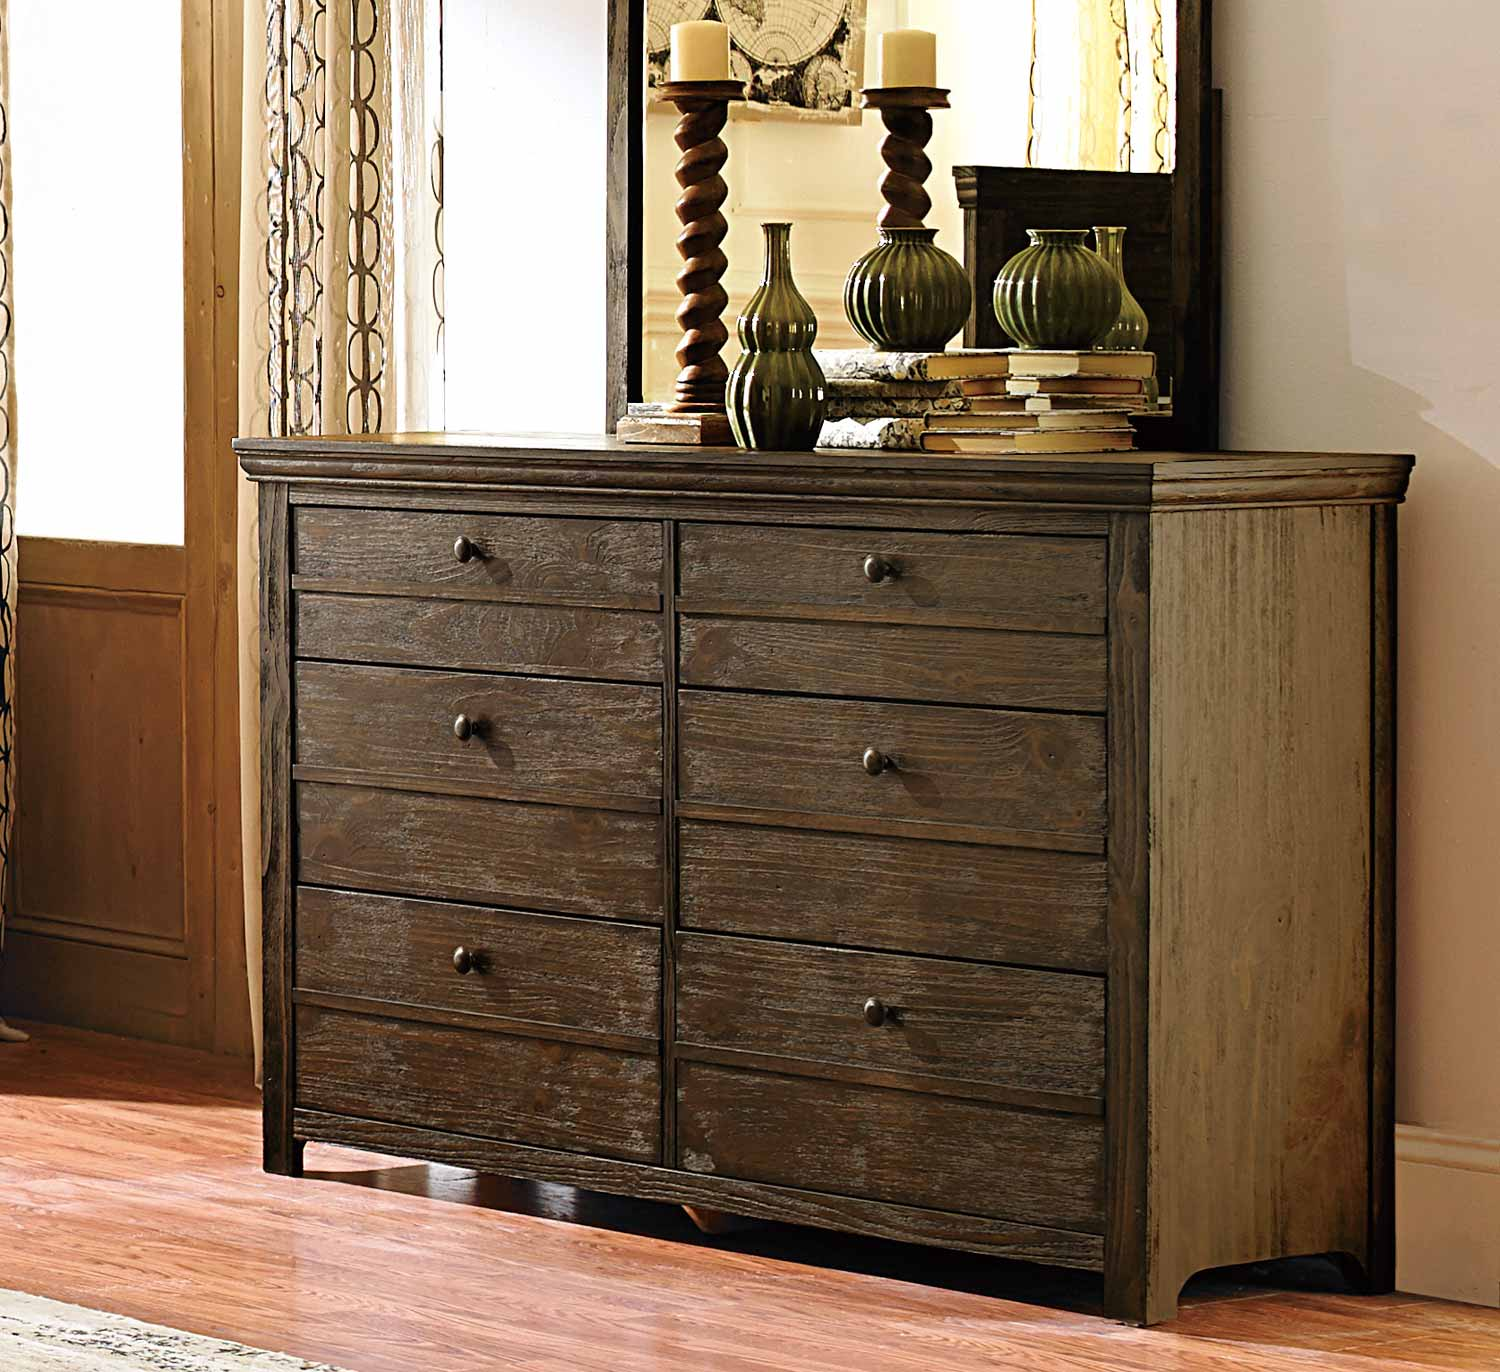 Homeelegance Grey Dresser And Nightstand